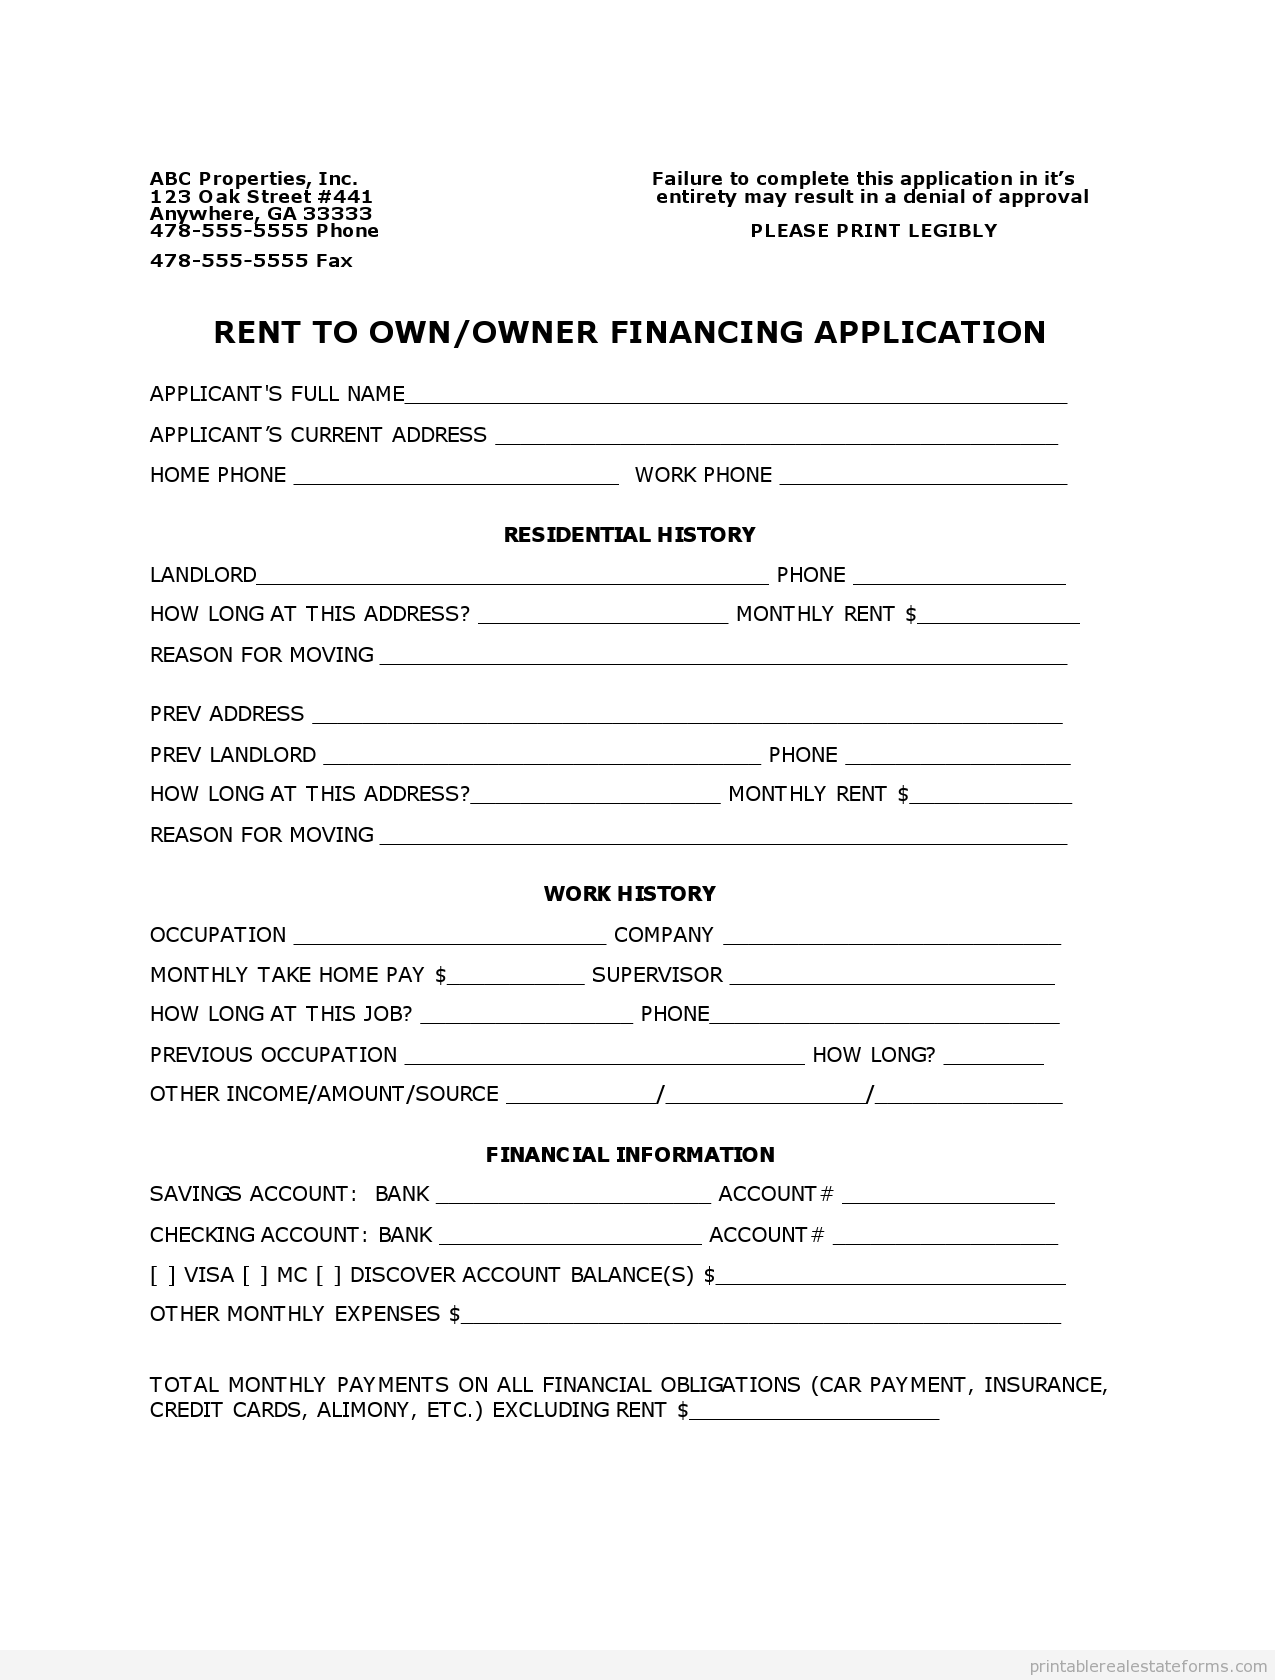 Owner Financing Agreement Printable Free Blank Form Real